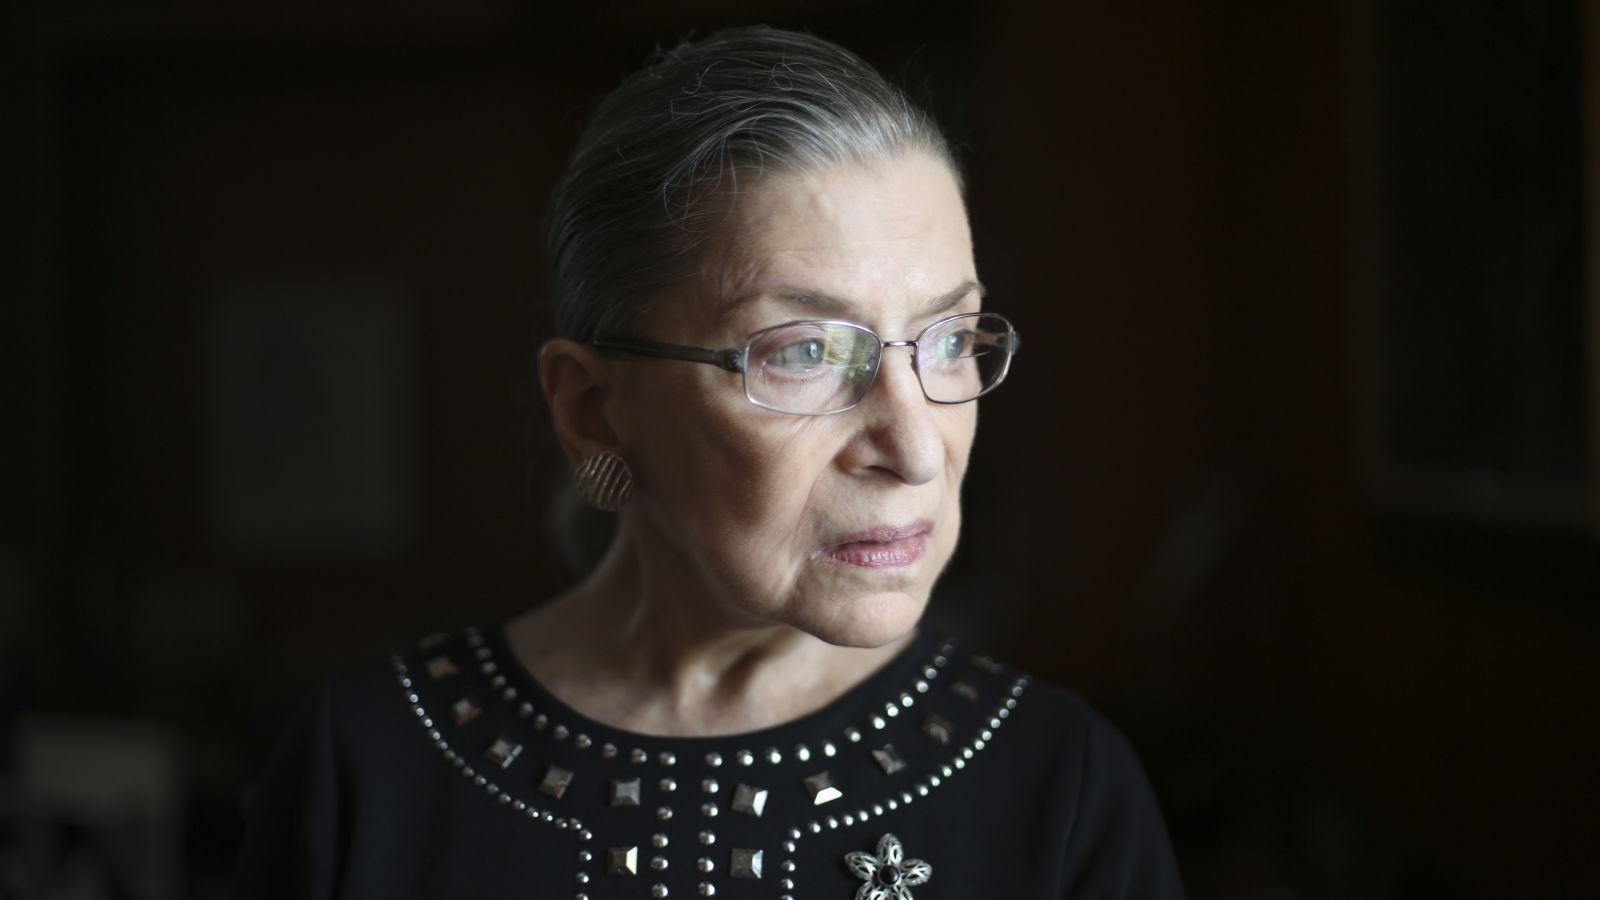 In photos: Supreme Court Justice Ruth Bader Ginsburg